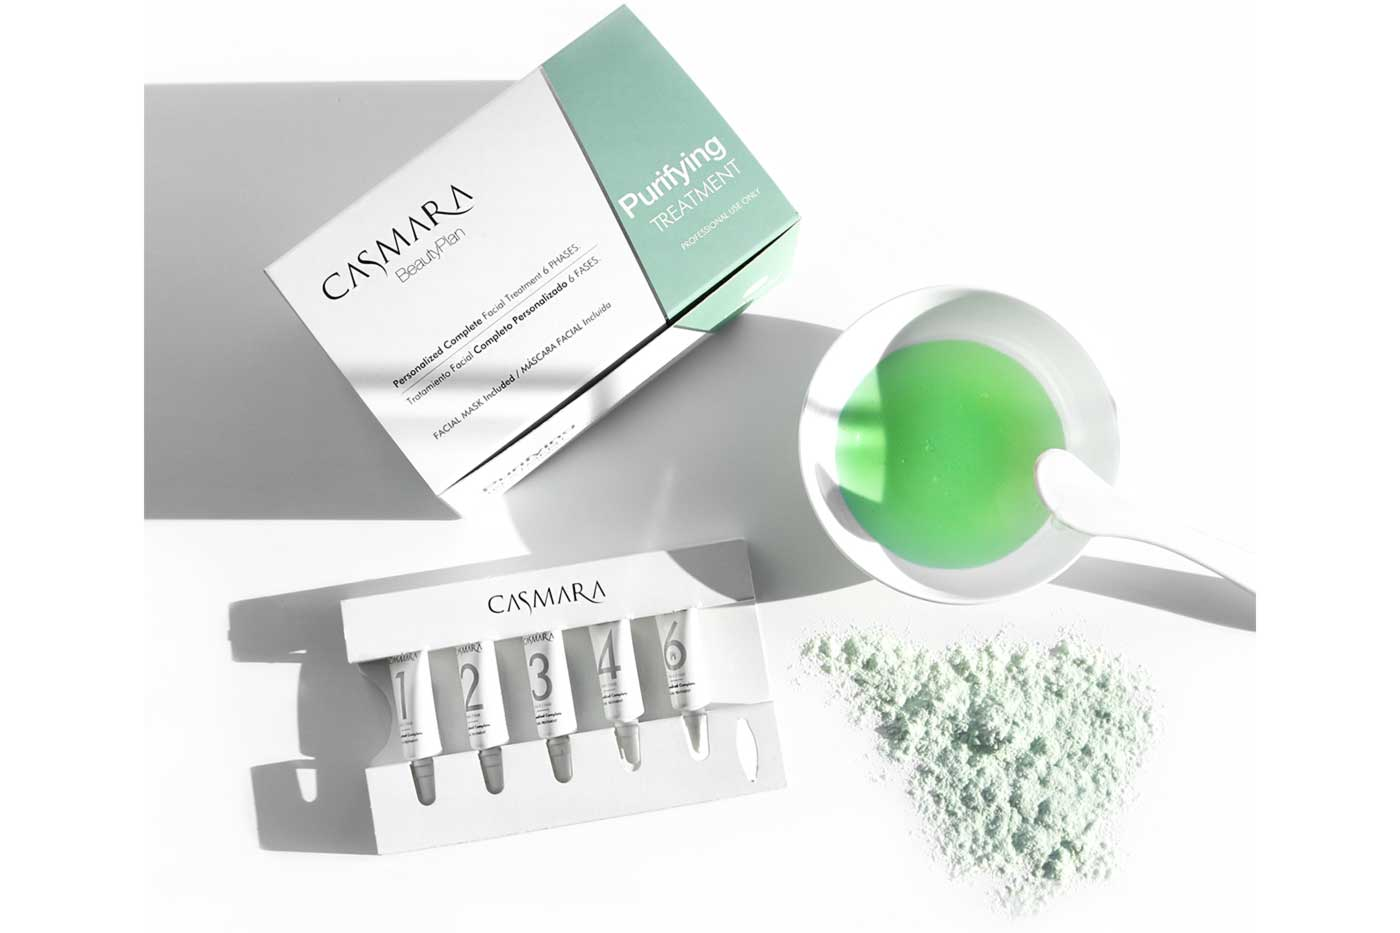 Skin rejuvenation with Casmara's facial treatment